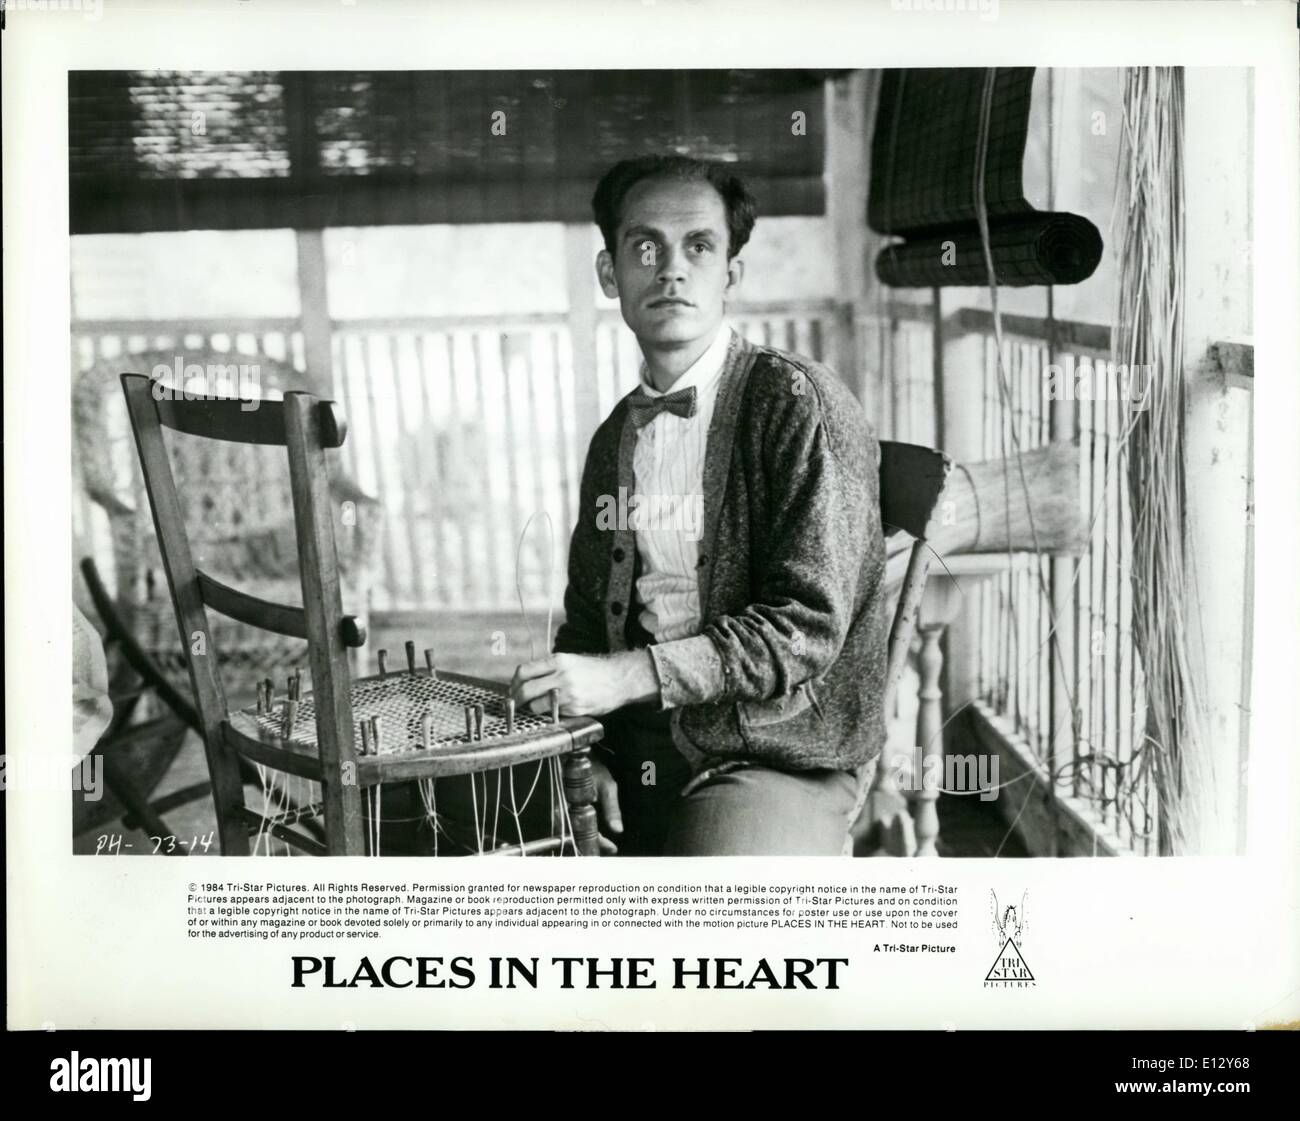 Feb. 25, 2012 - John Malkovich as Mr. Will, a blind World War I veteran, canes chairs as occupational theraphy and way to earn bed and board in Robert Benton's new film, Places in the Heart, for release by Tri-Star. - Stock Image